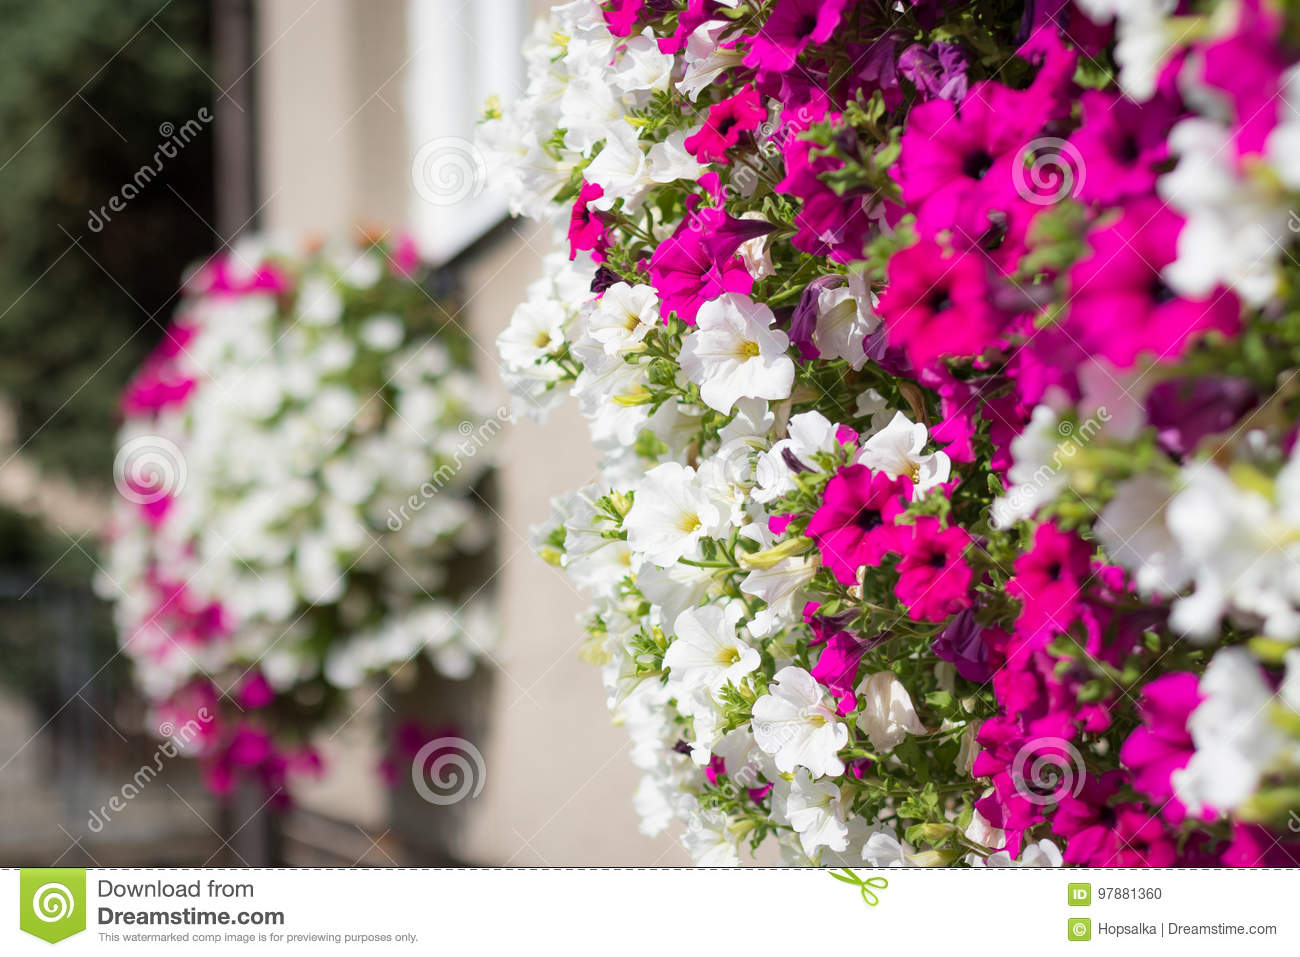 Vibrant White And Pink Petunia Surfinia Flowers Stock Photo